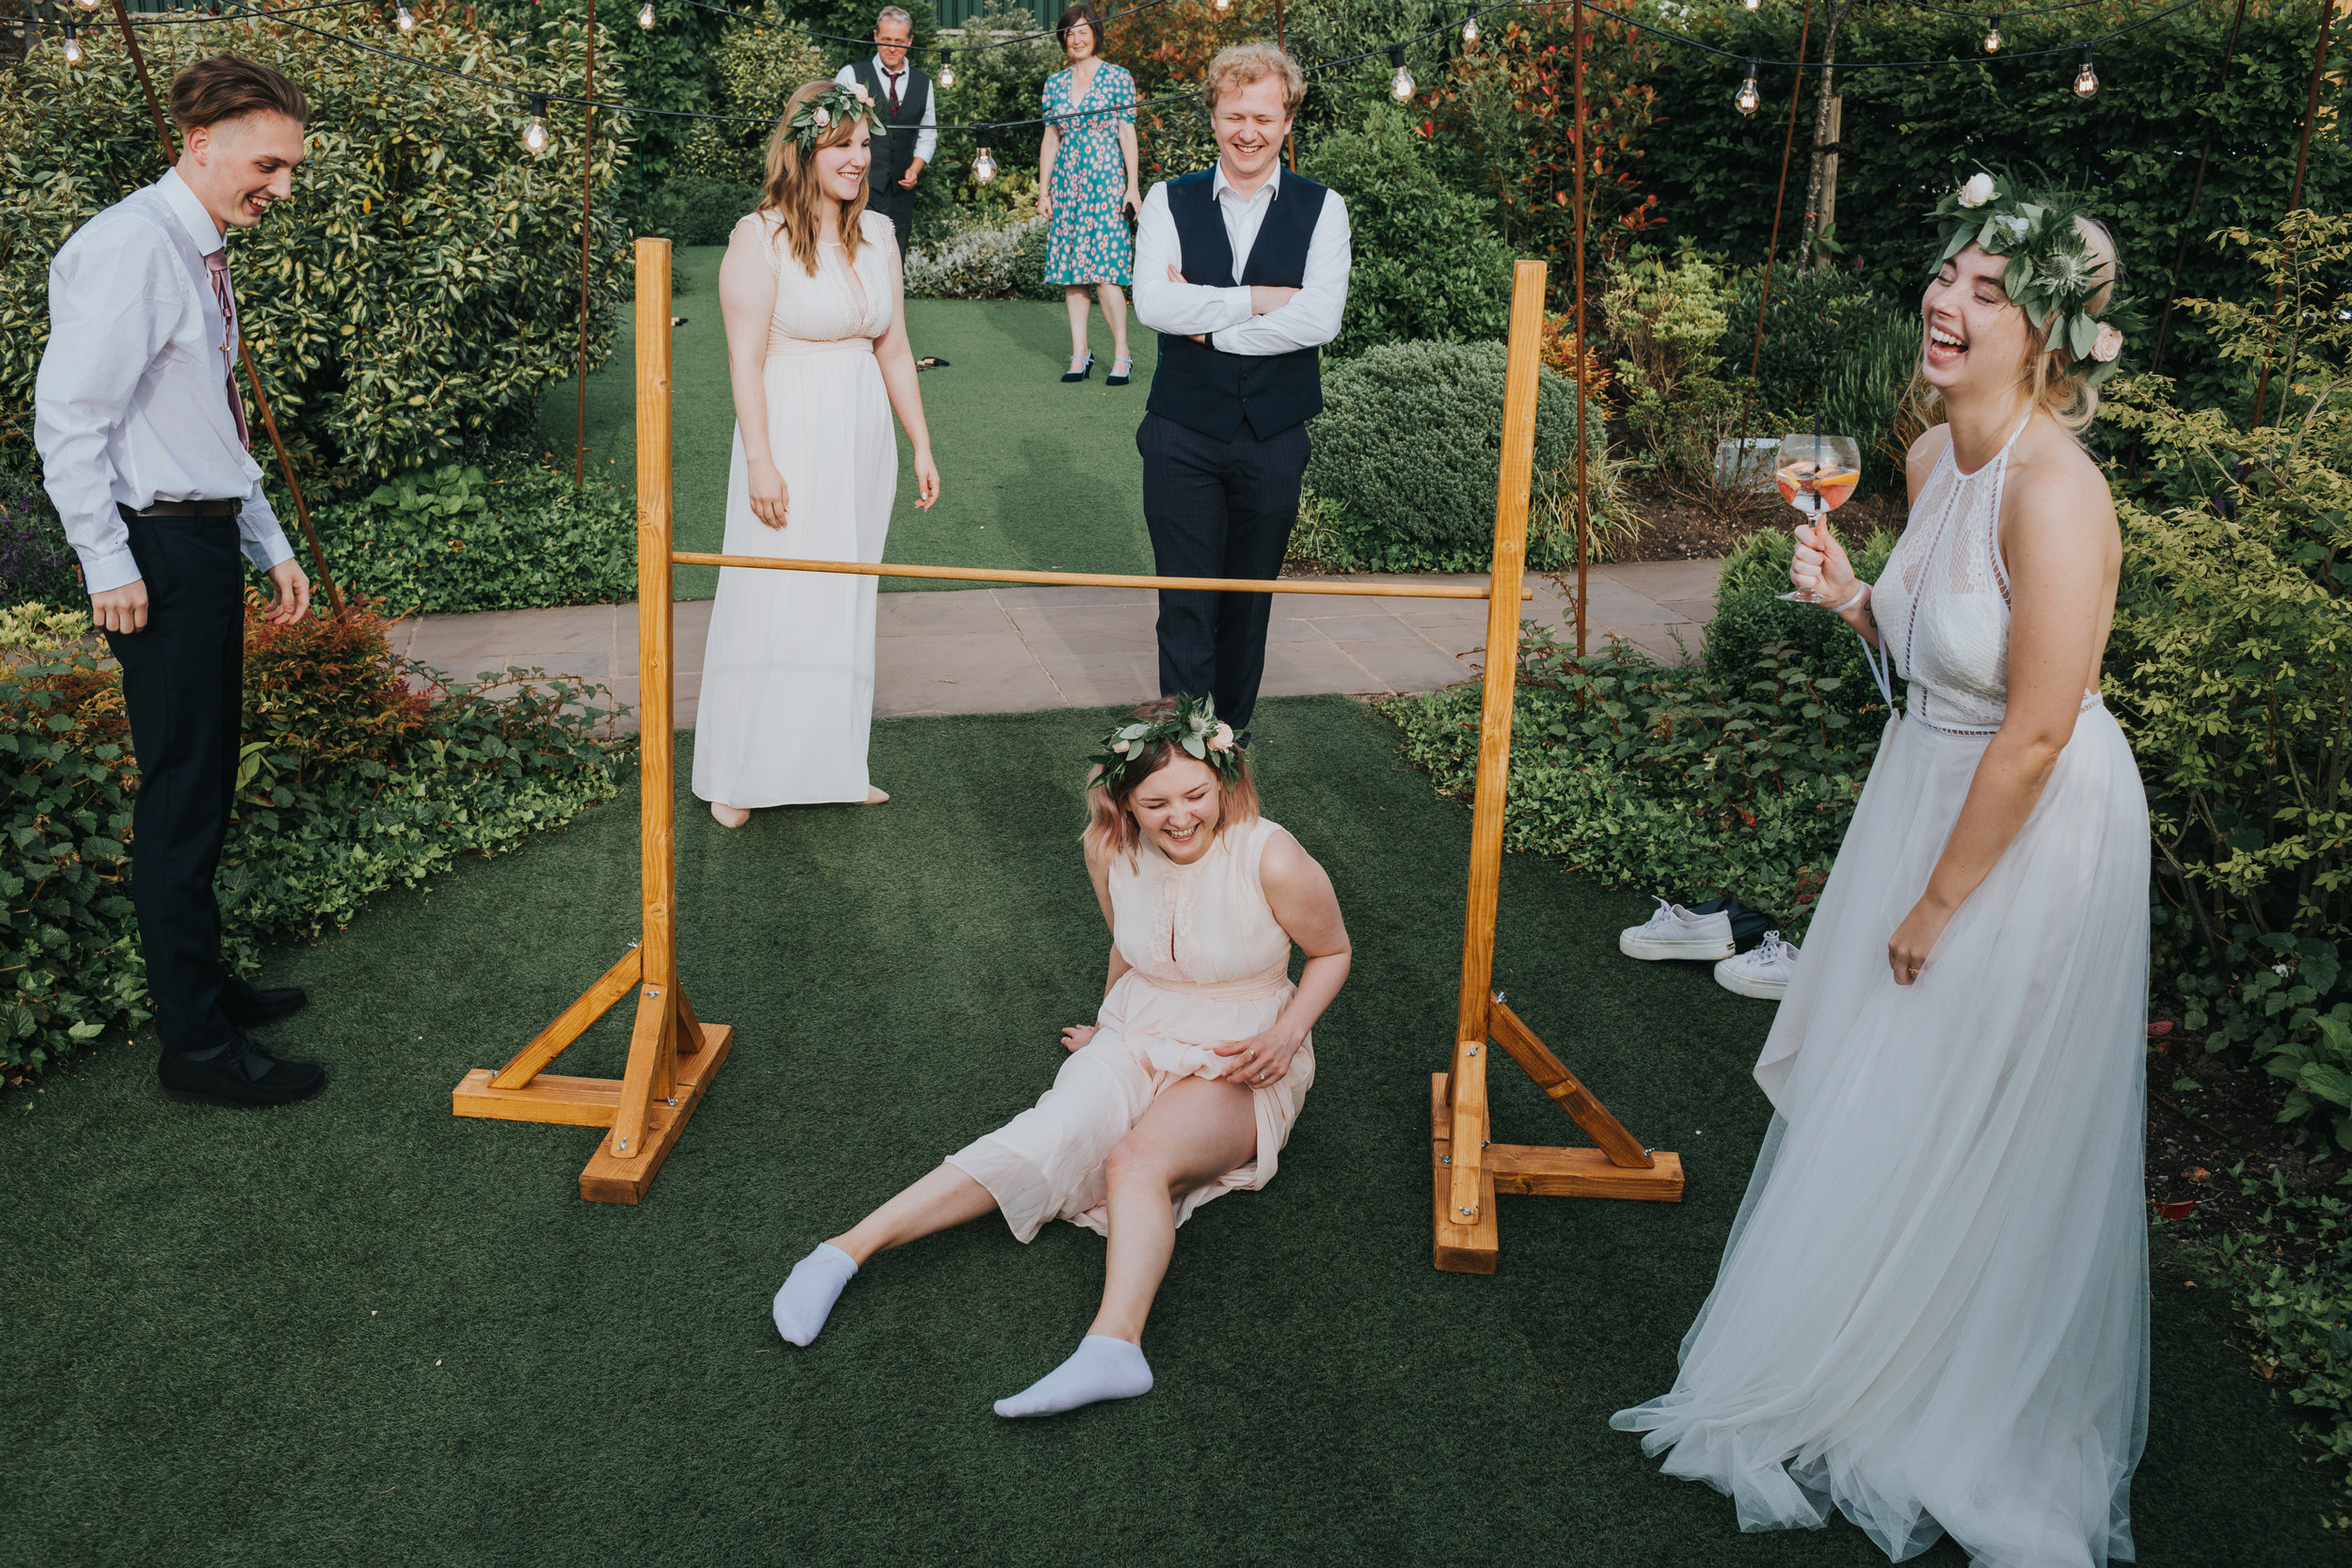 Bridesmaid falls on her bum while playing  limbo. Bride is holding her drink and laughing.